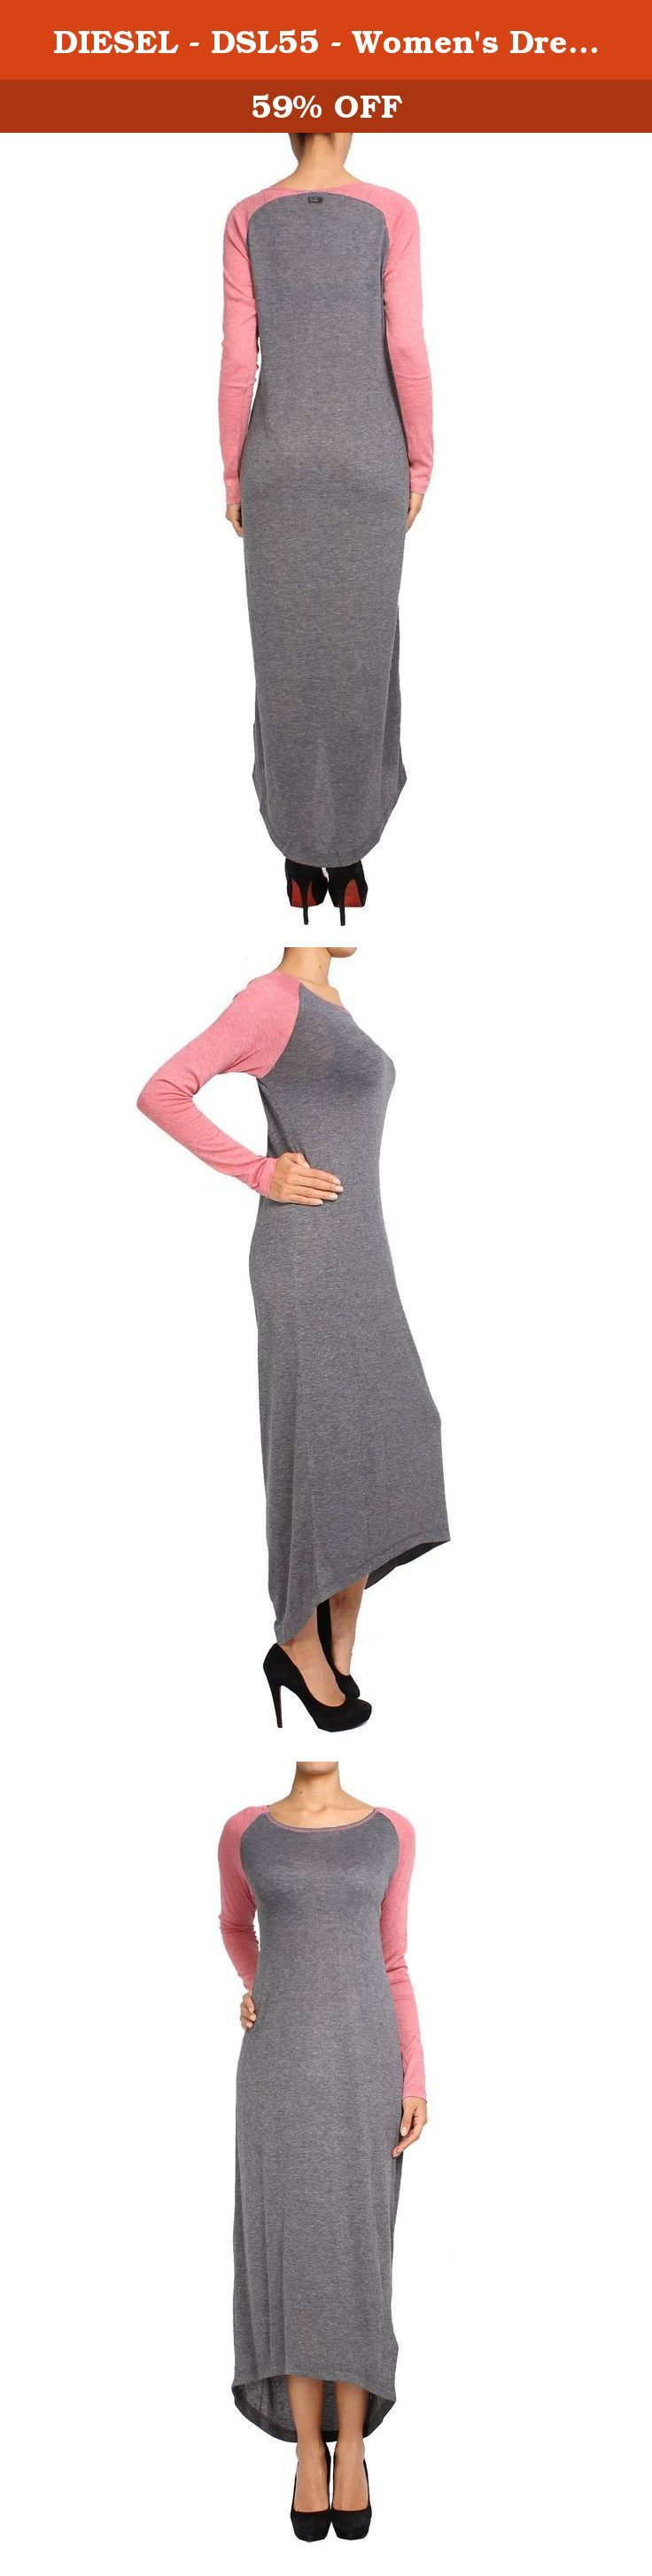 DIESEL - DSL55 - Women's Dress DELEON - gray, M. Style Name: column. Length: maxi. Collar Type: Boat Neck. Sleeve type: Long Sleeve. Composition: 65% Polyester 18% Viscose 17% Cotton.